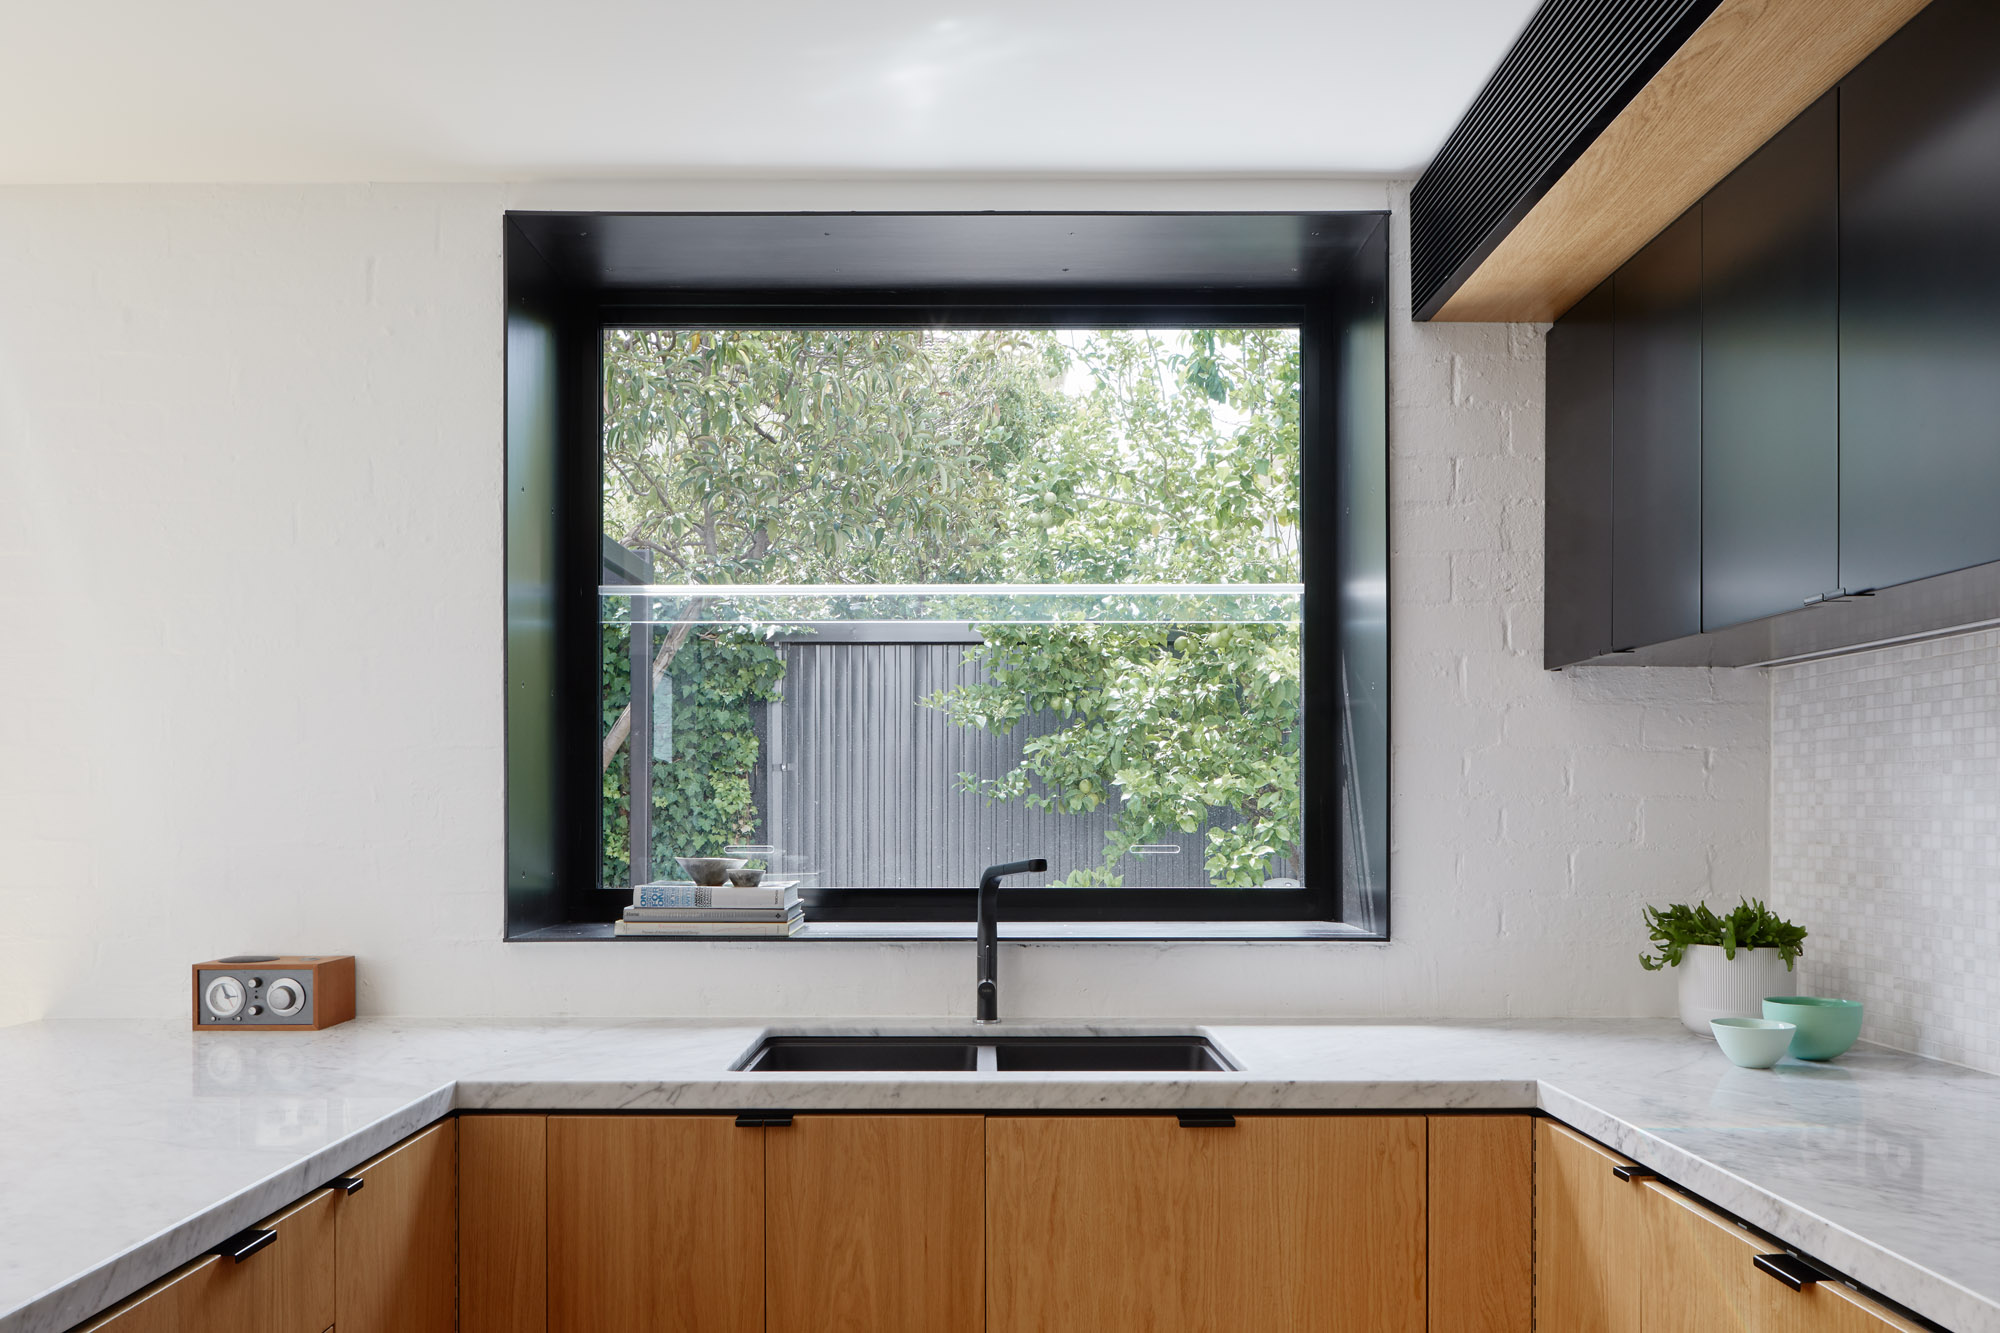 Maximise The Full Potential Of The Solid But Ultimately Uninspiring Existing Rear Extension From The 1970's